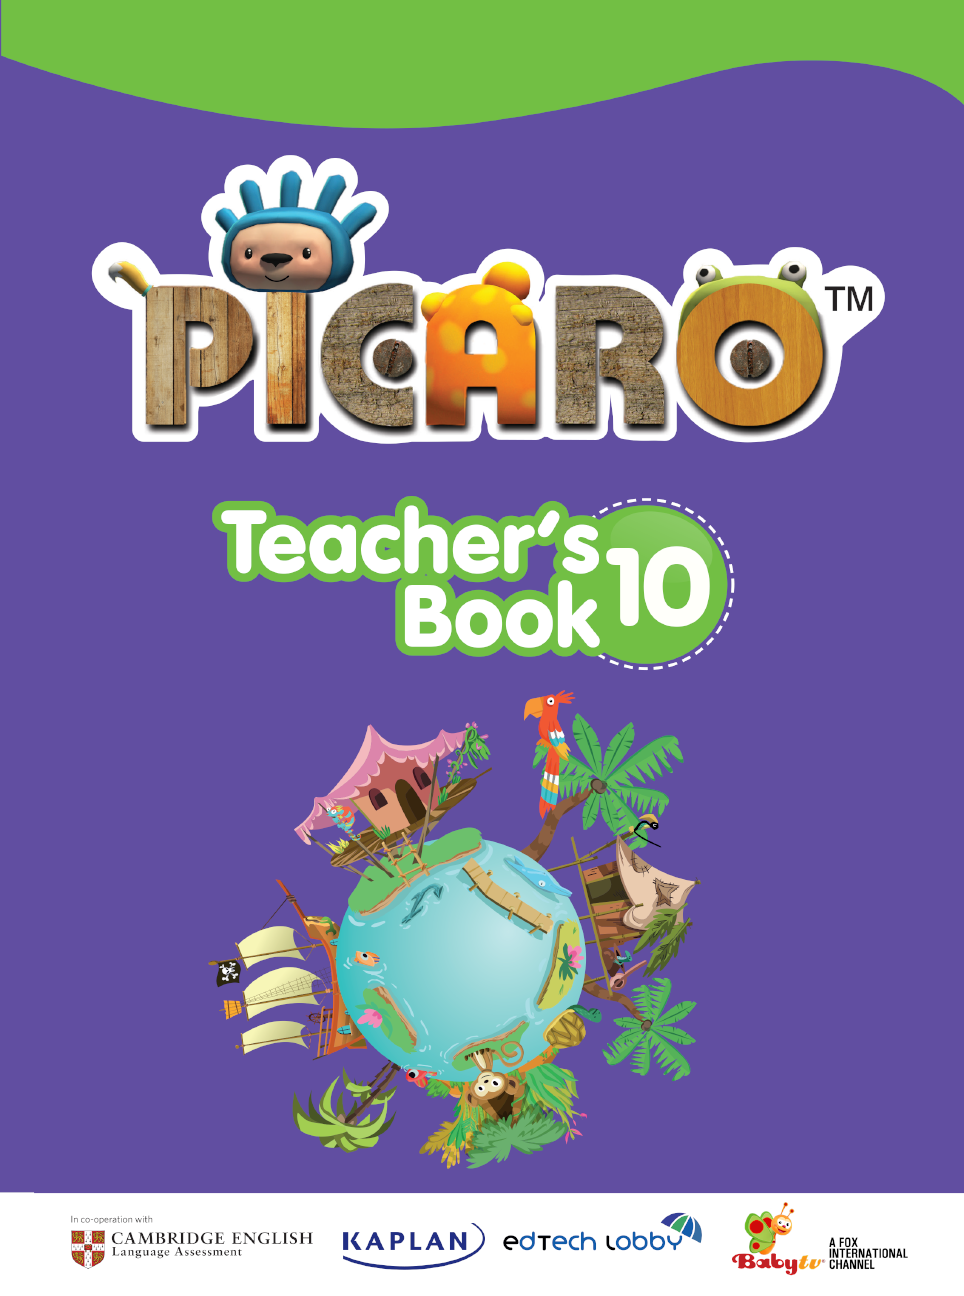 Picaro Teacher's Book Unit 10